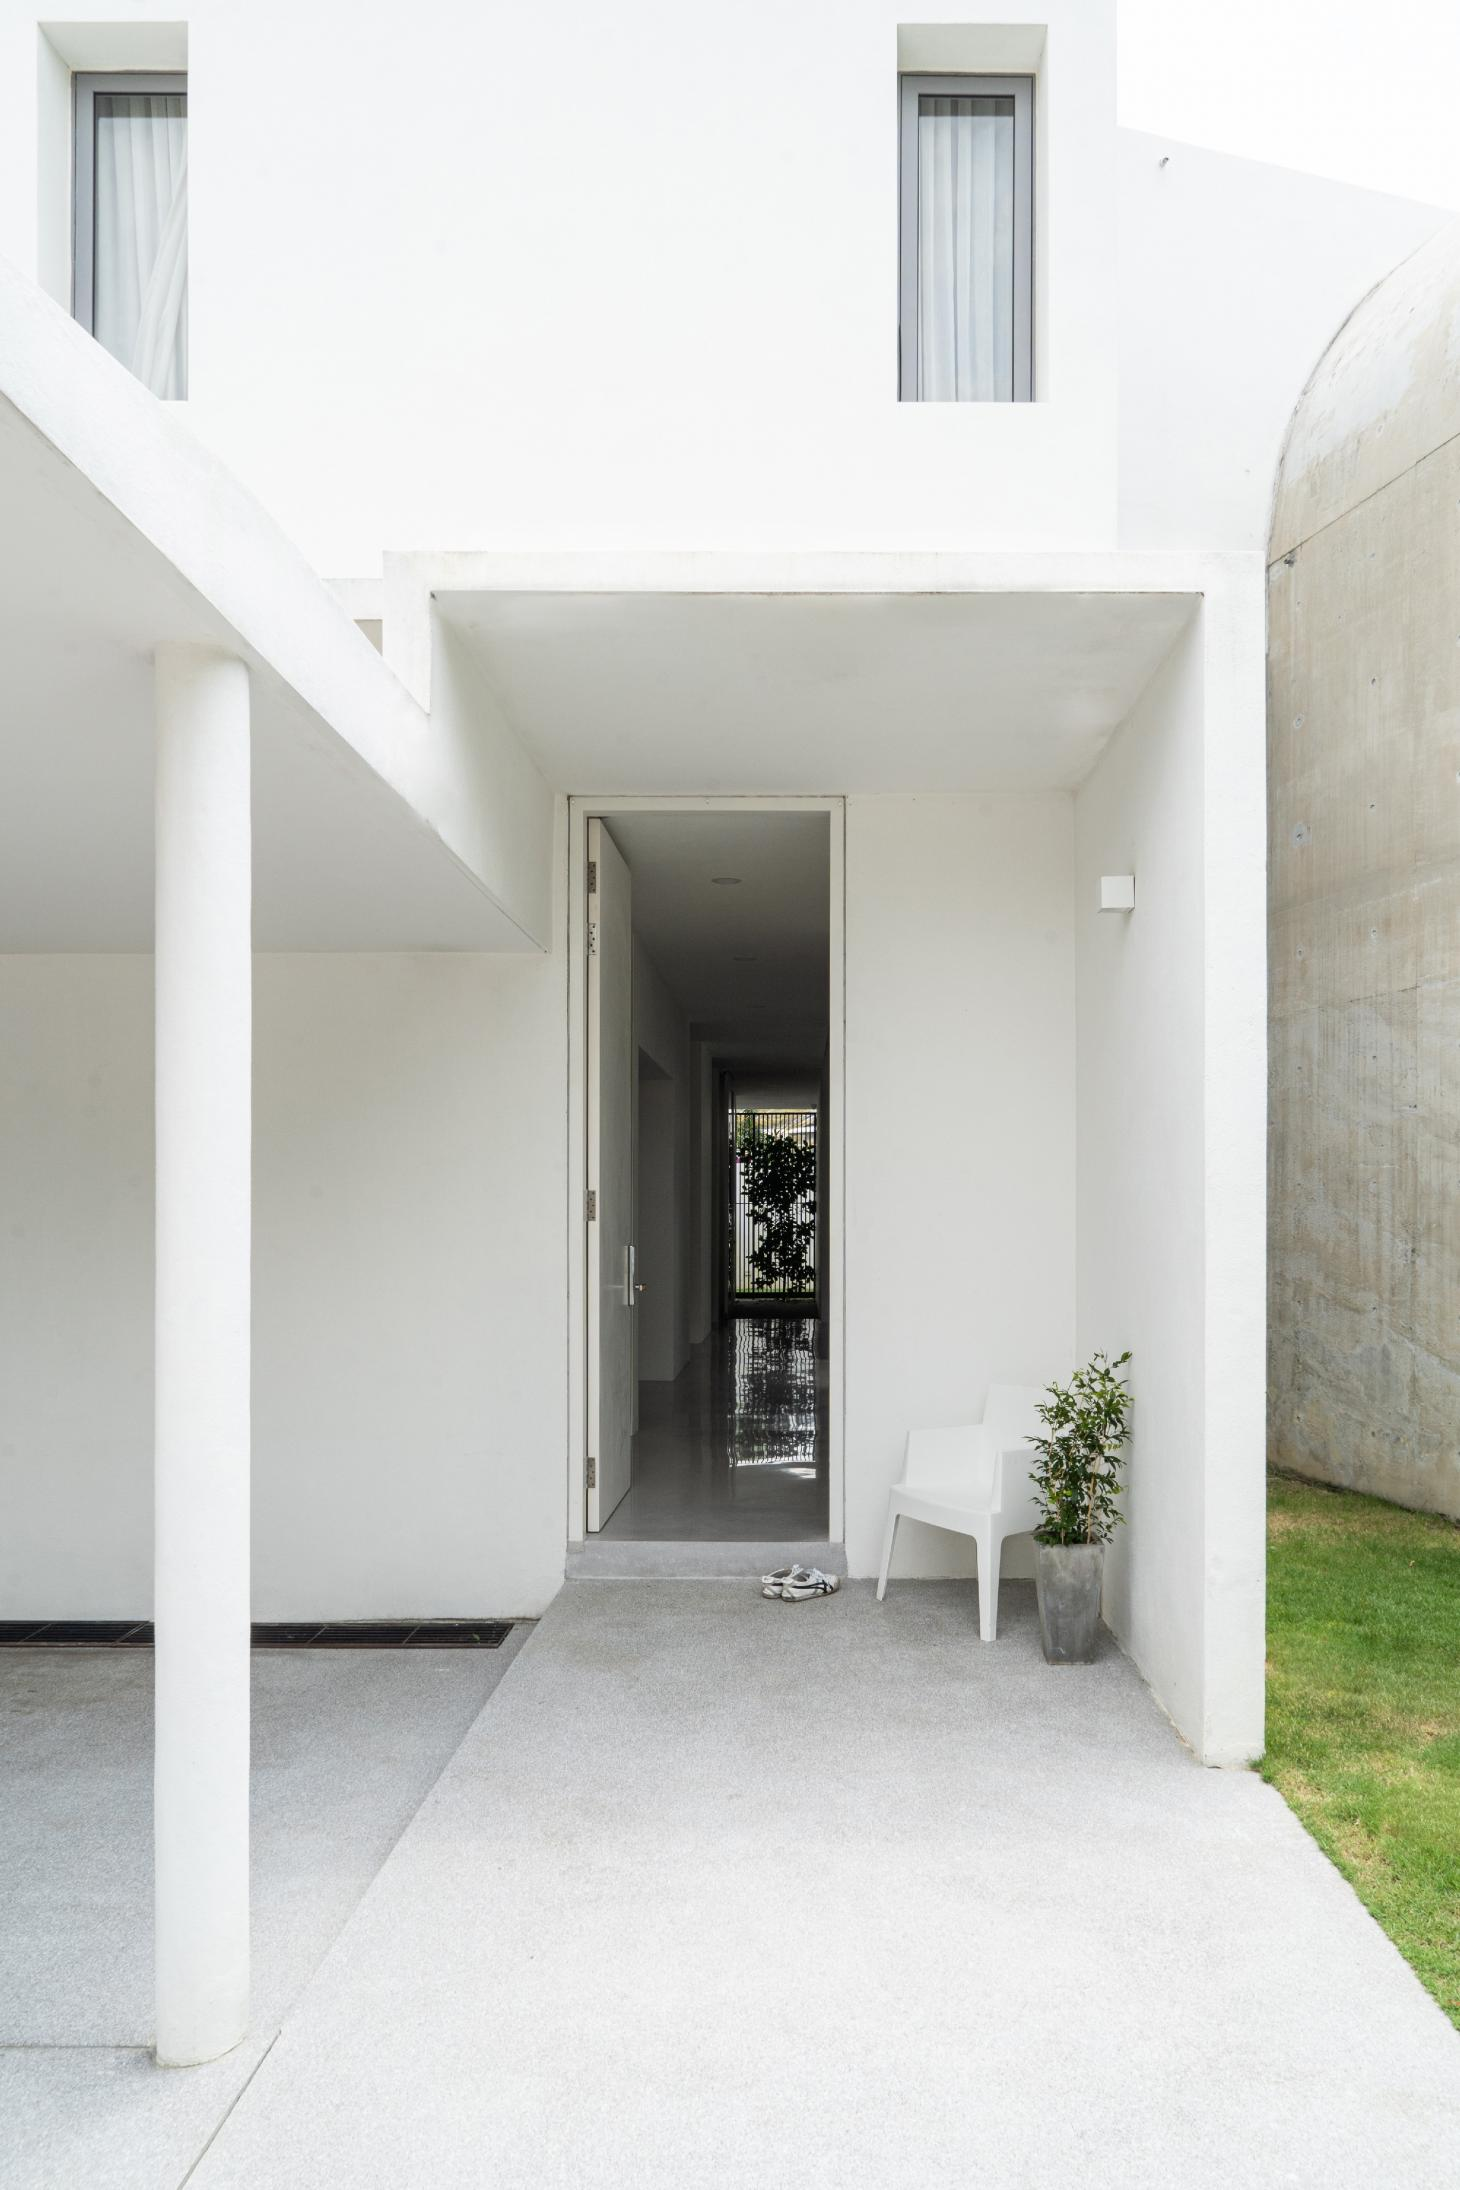 minimalist white entrance at Bewboc house in Malaysia